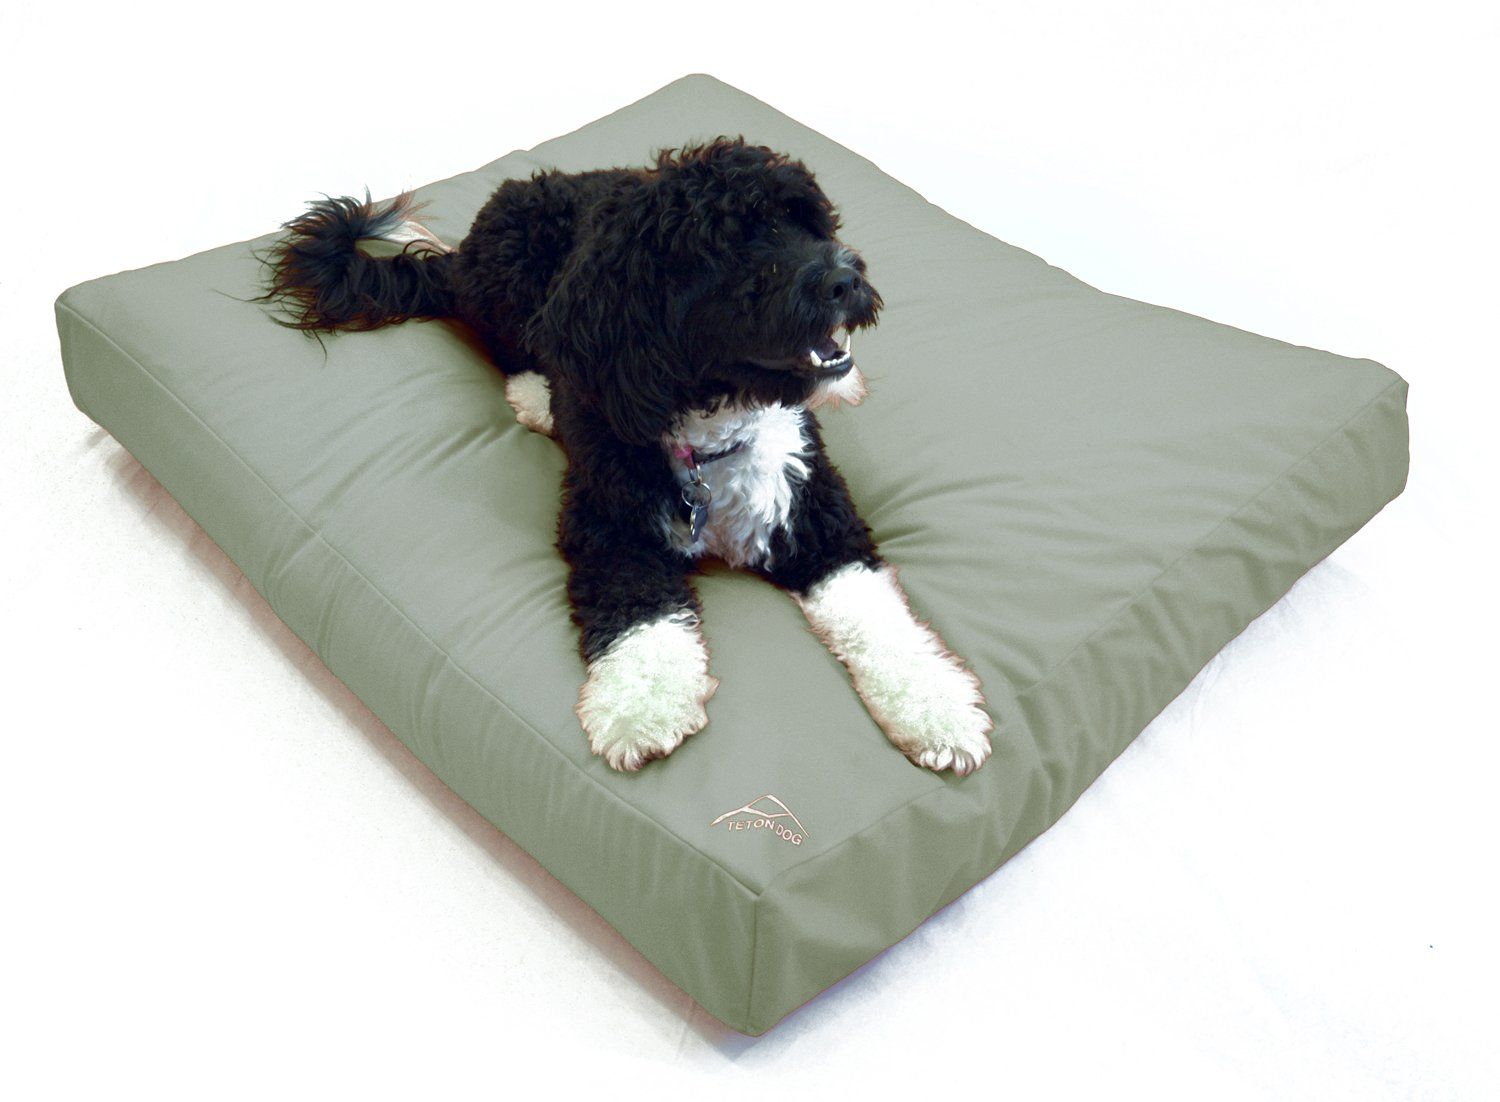 TETON DOG Best Waterproof DIY Replacement Dog Bed Cover